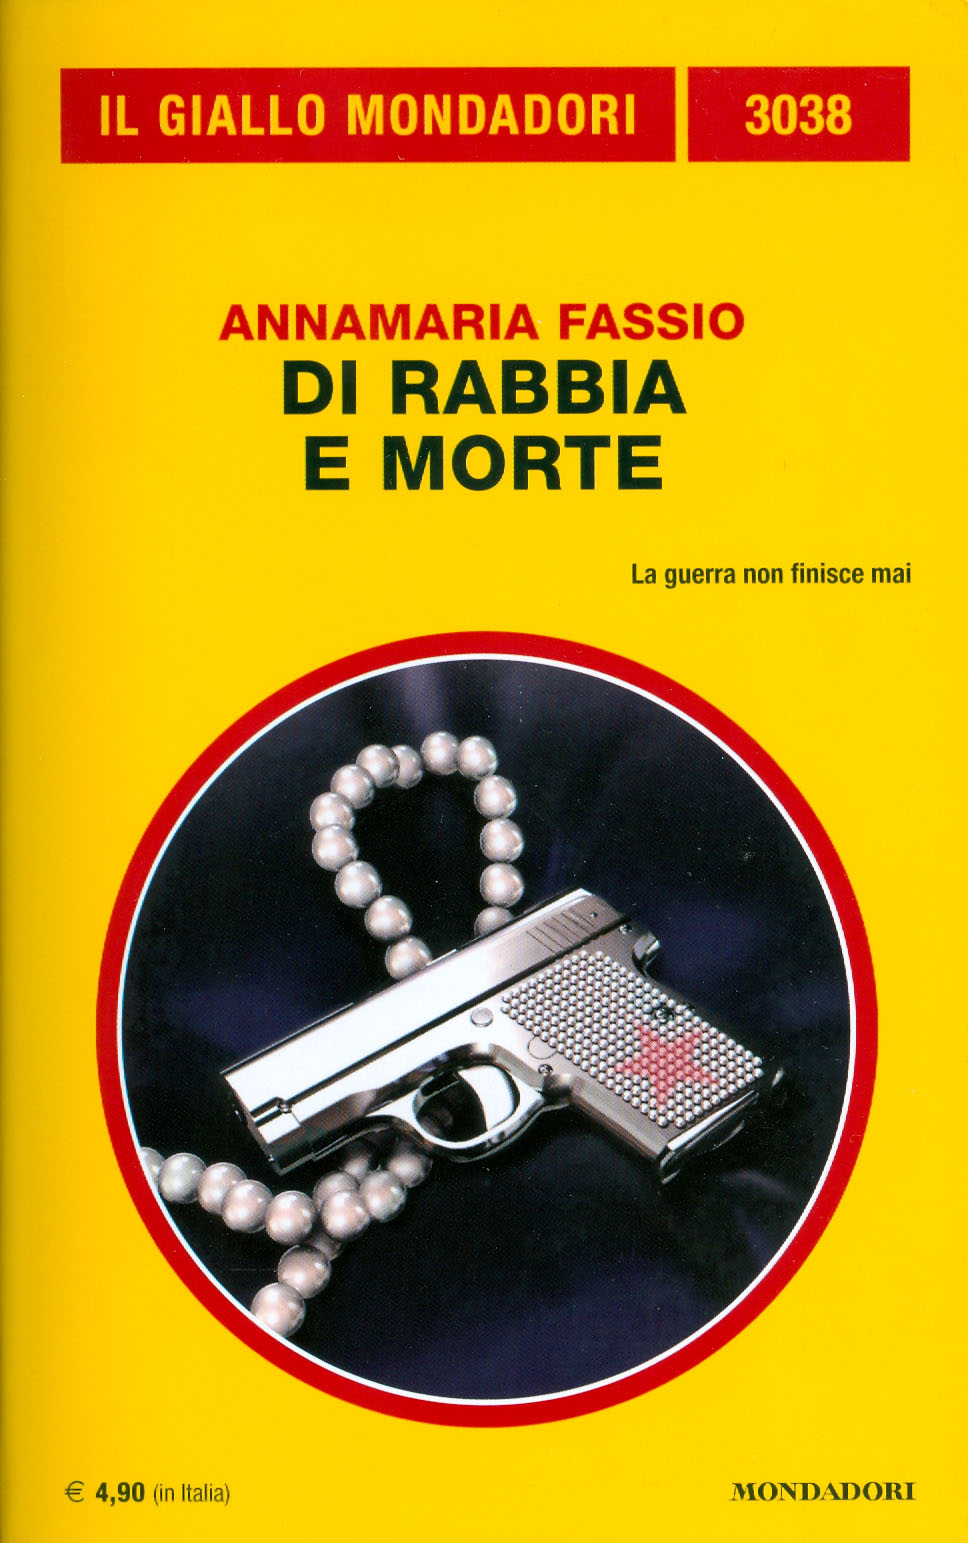 Di rabbia e morte